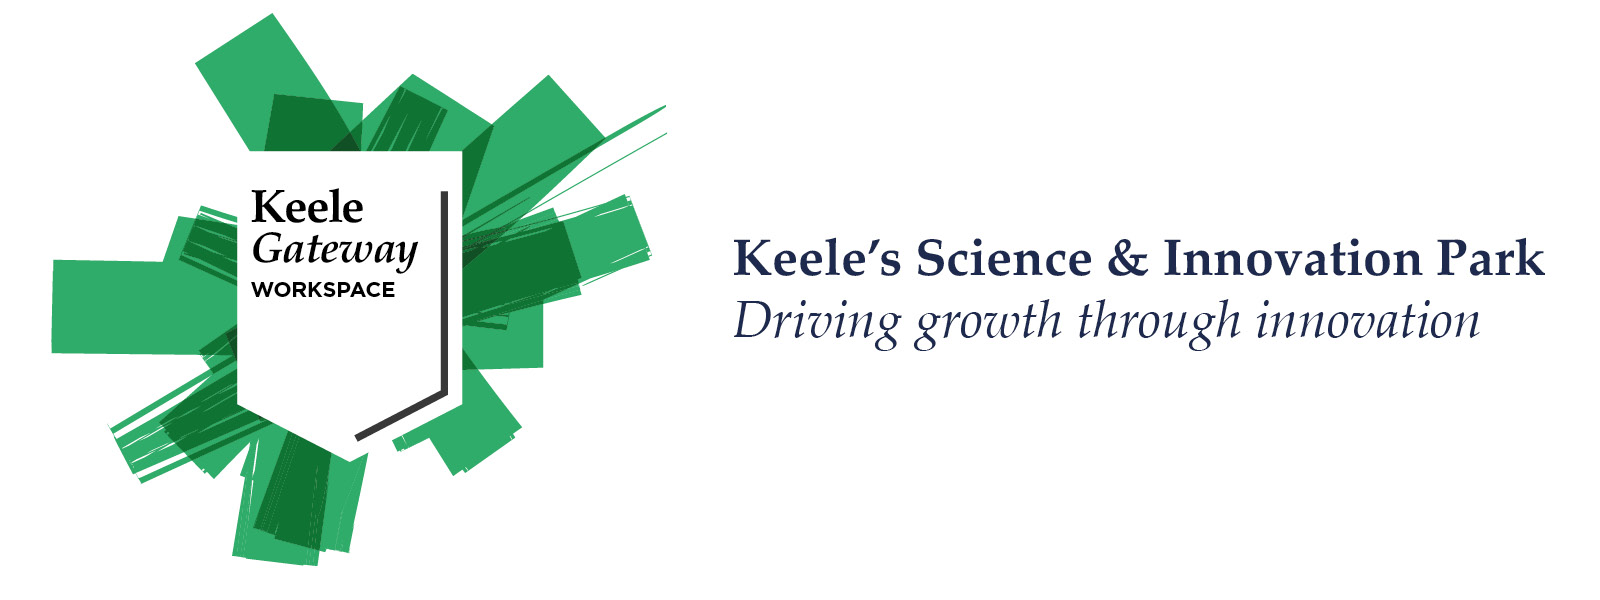 Keele University Science and Innovation park: Driving growth through innovation